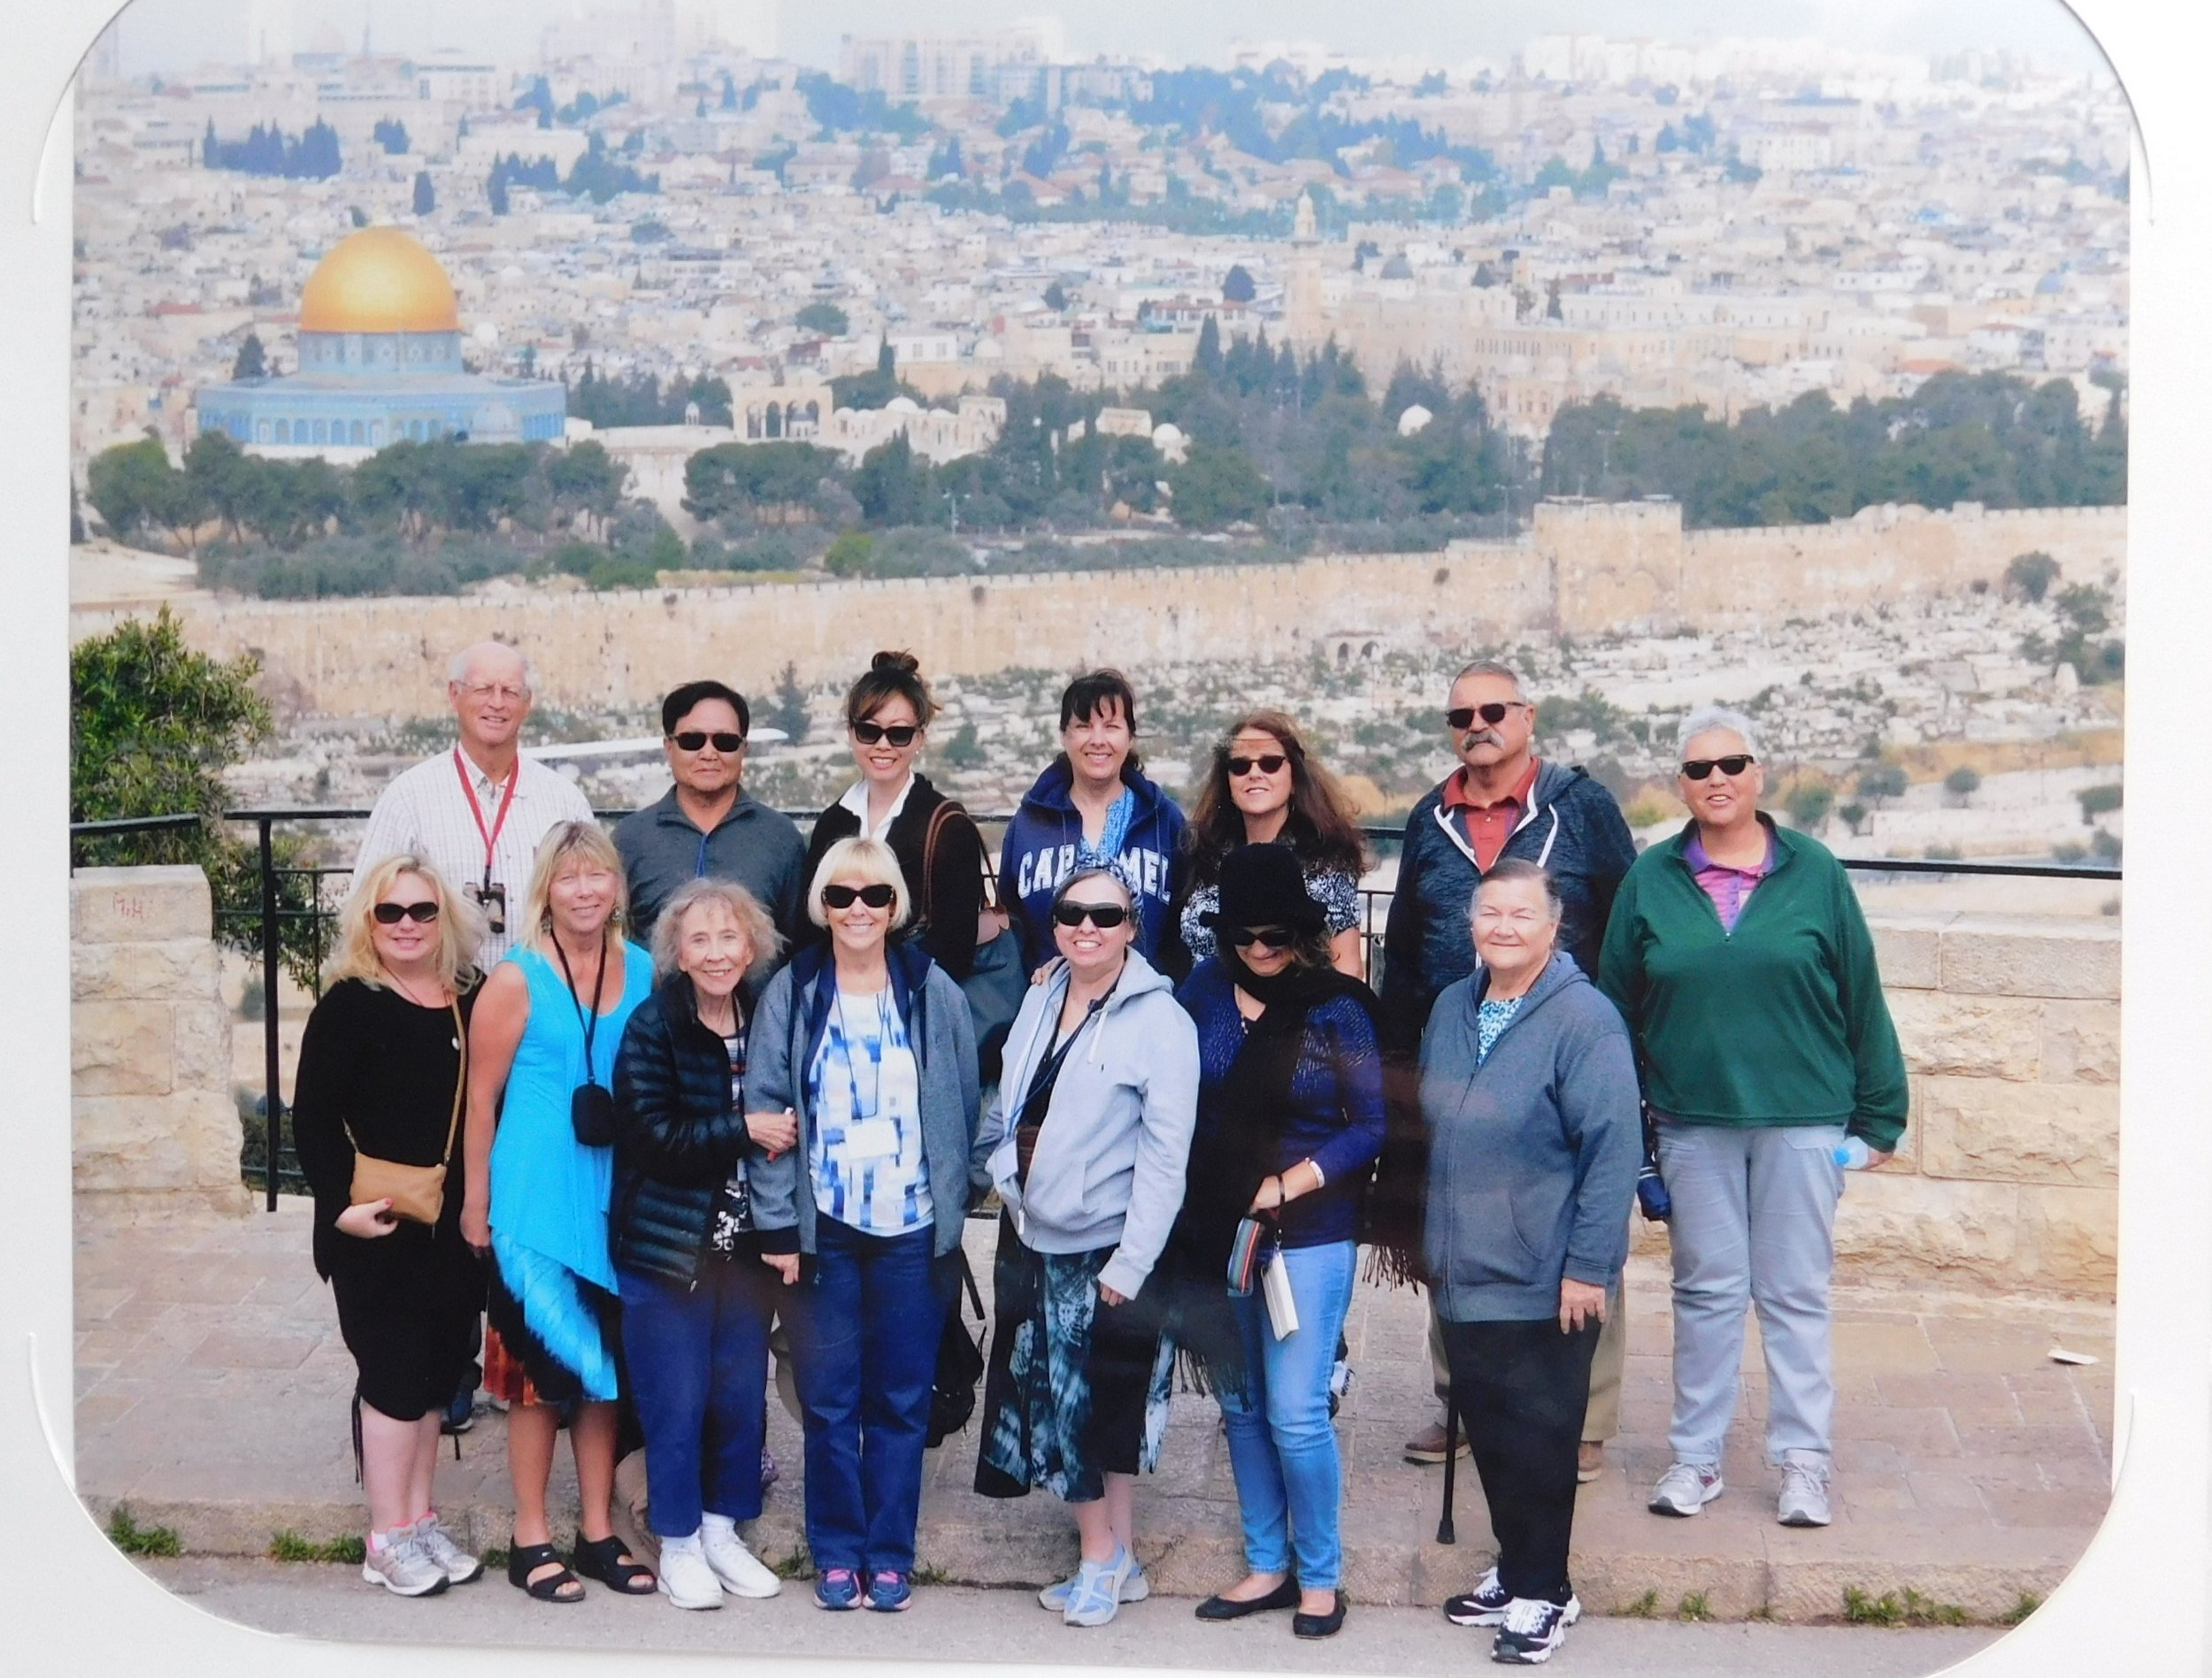 Tour group photo taken at the Mount of Olives